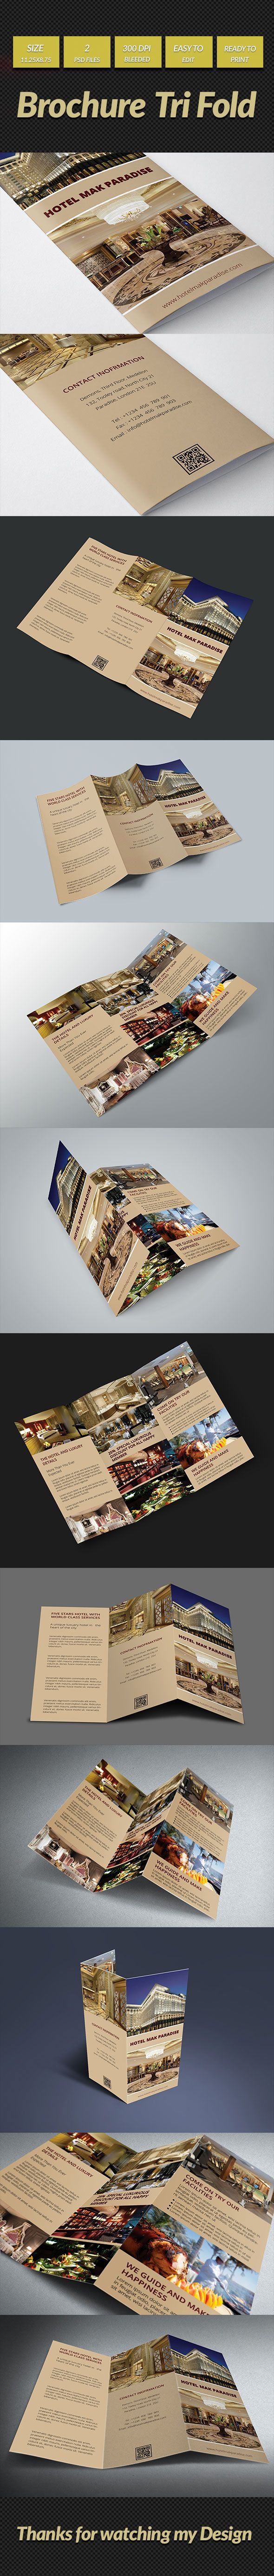 Hotel MAK Paradise Tri Fold Brochure on Behance